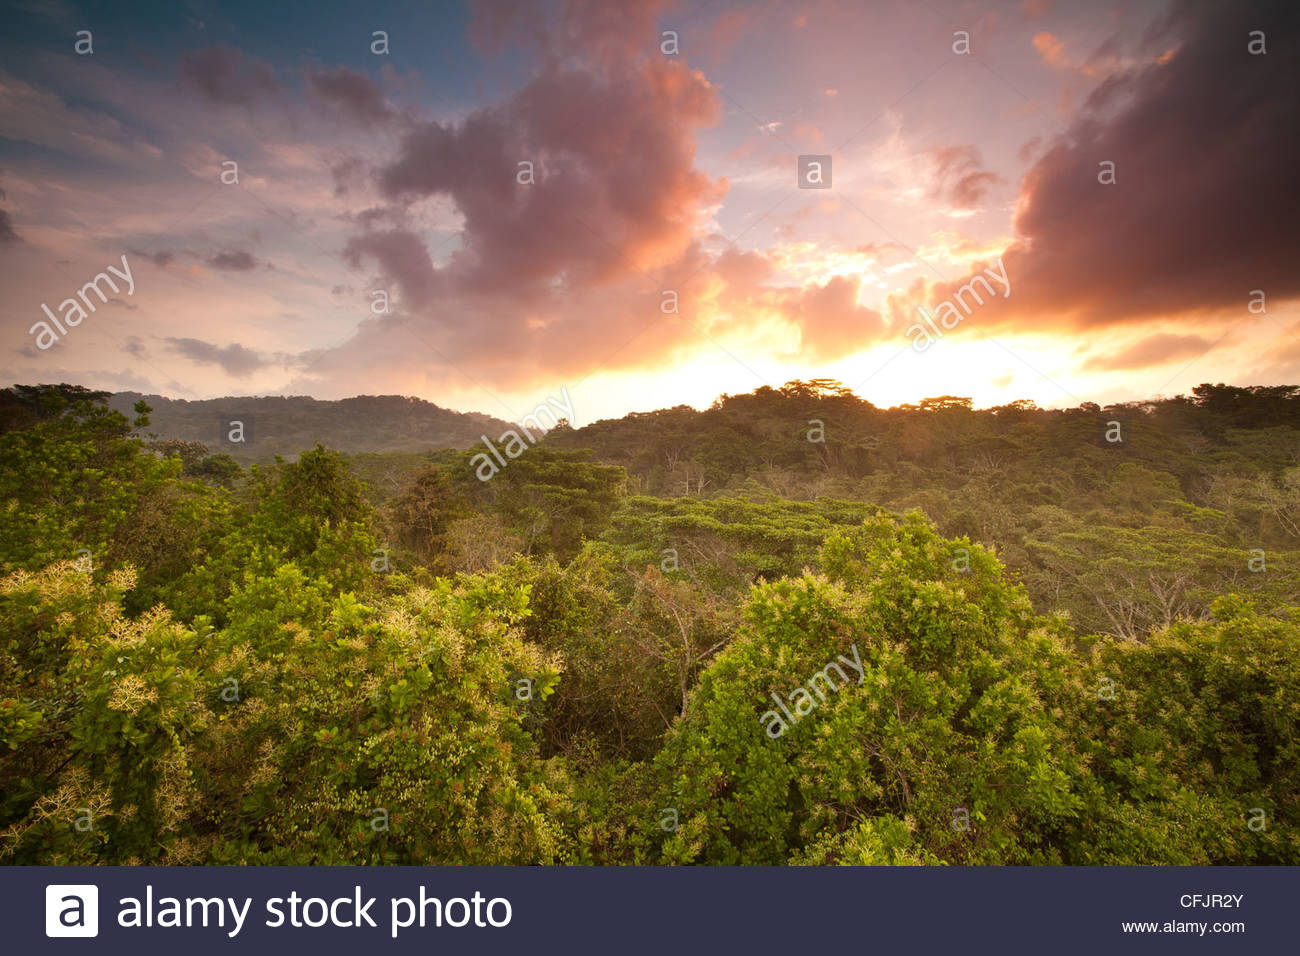 Sonnenaufgang in Soberania Nationalpark, Republik von Panama. Stockfoto